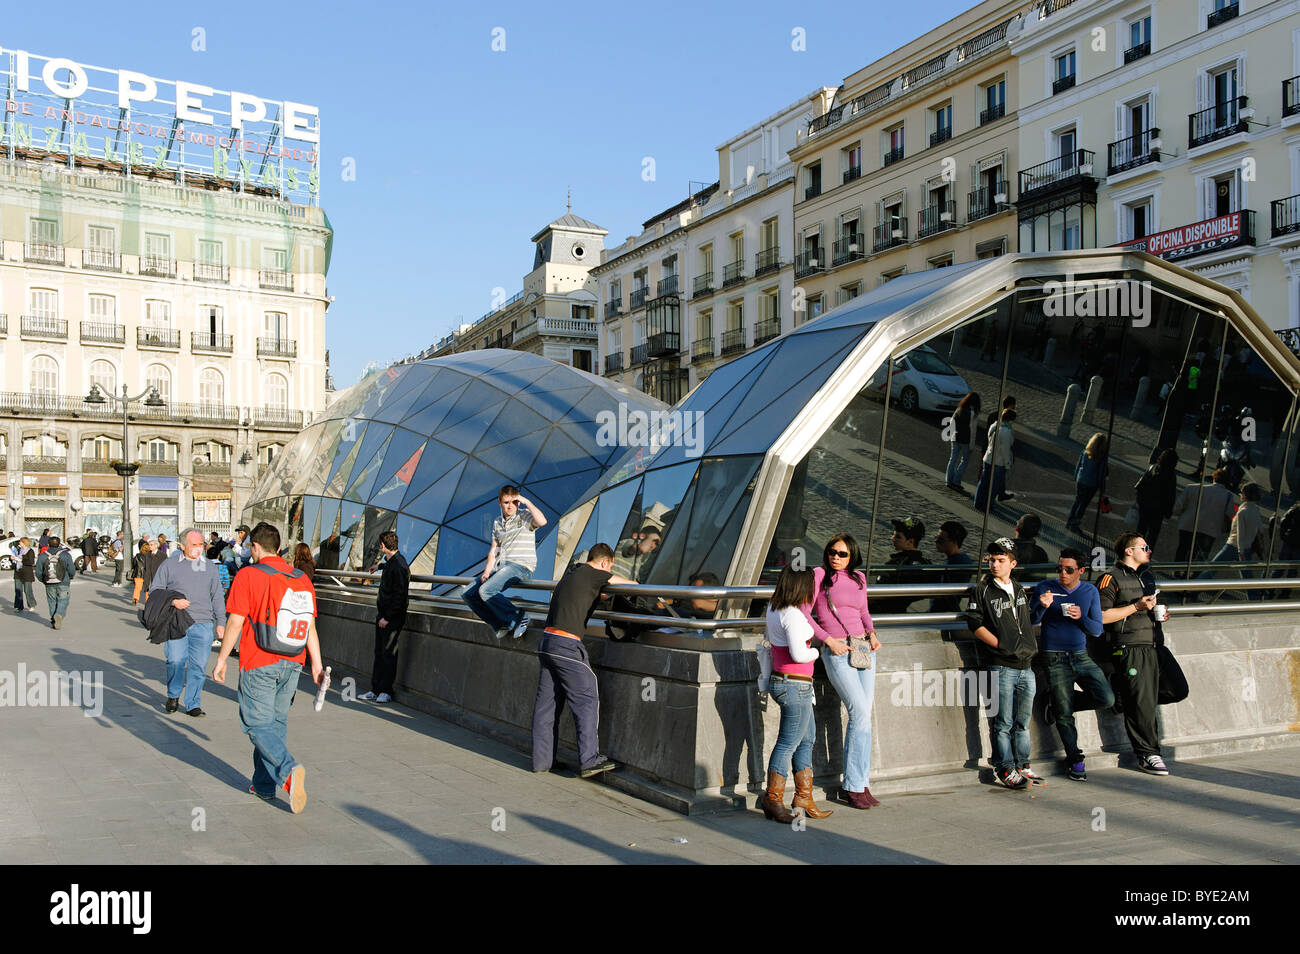 Metro station, Plaza Puerto del Sol, Madrid, Spain, Europe - Stock Image